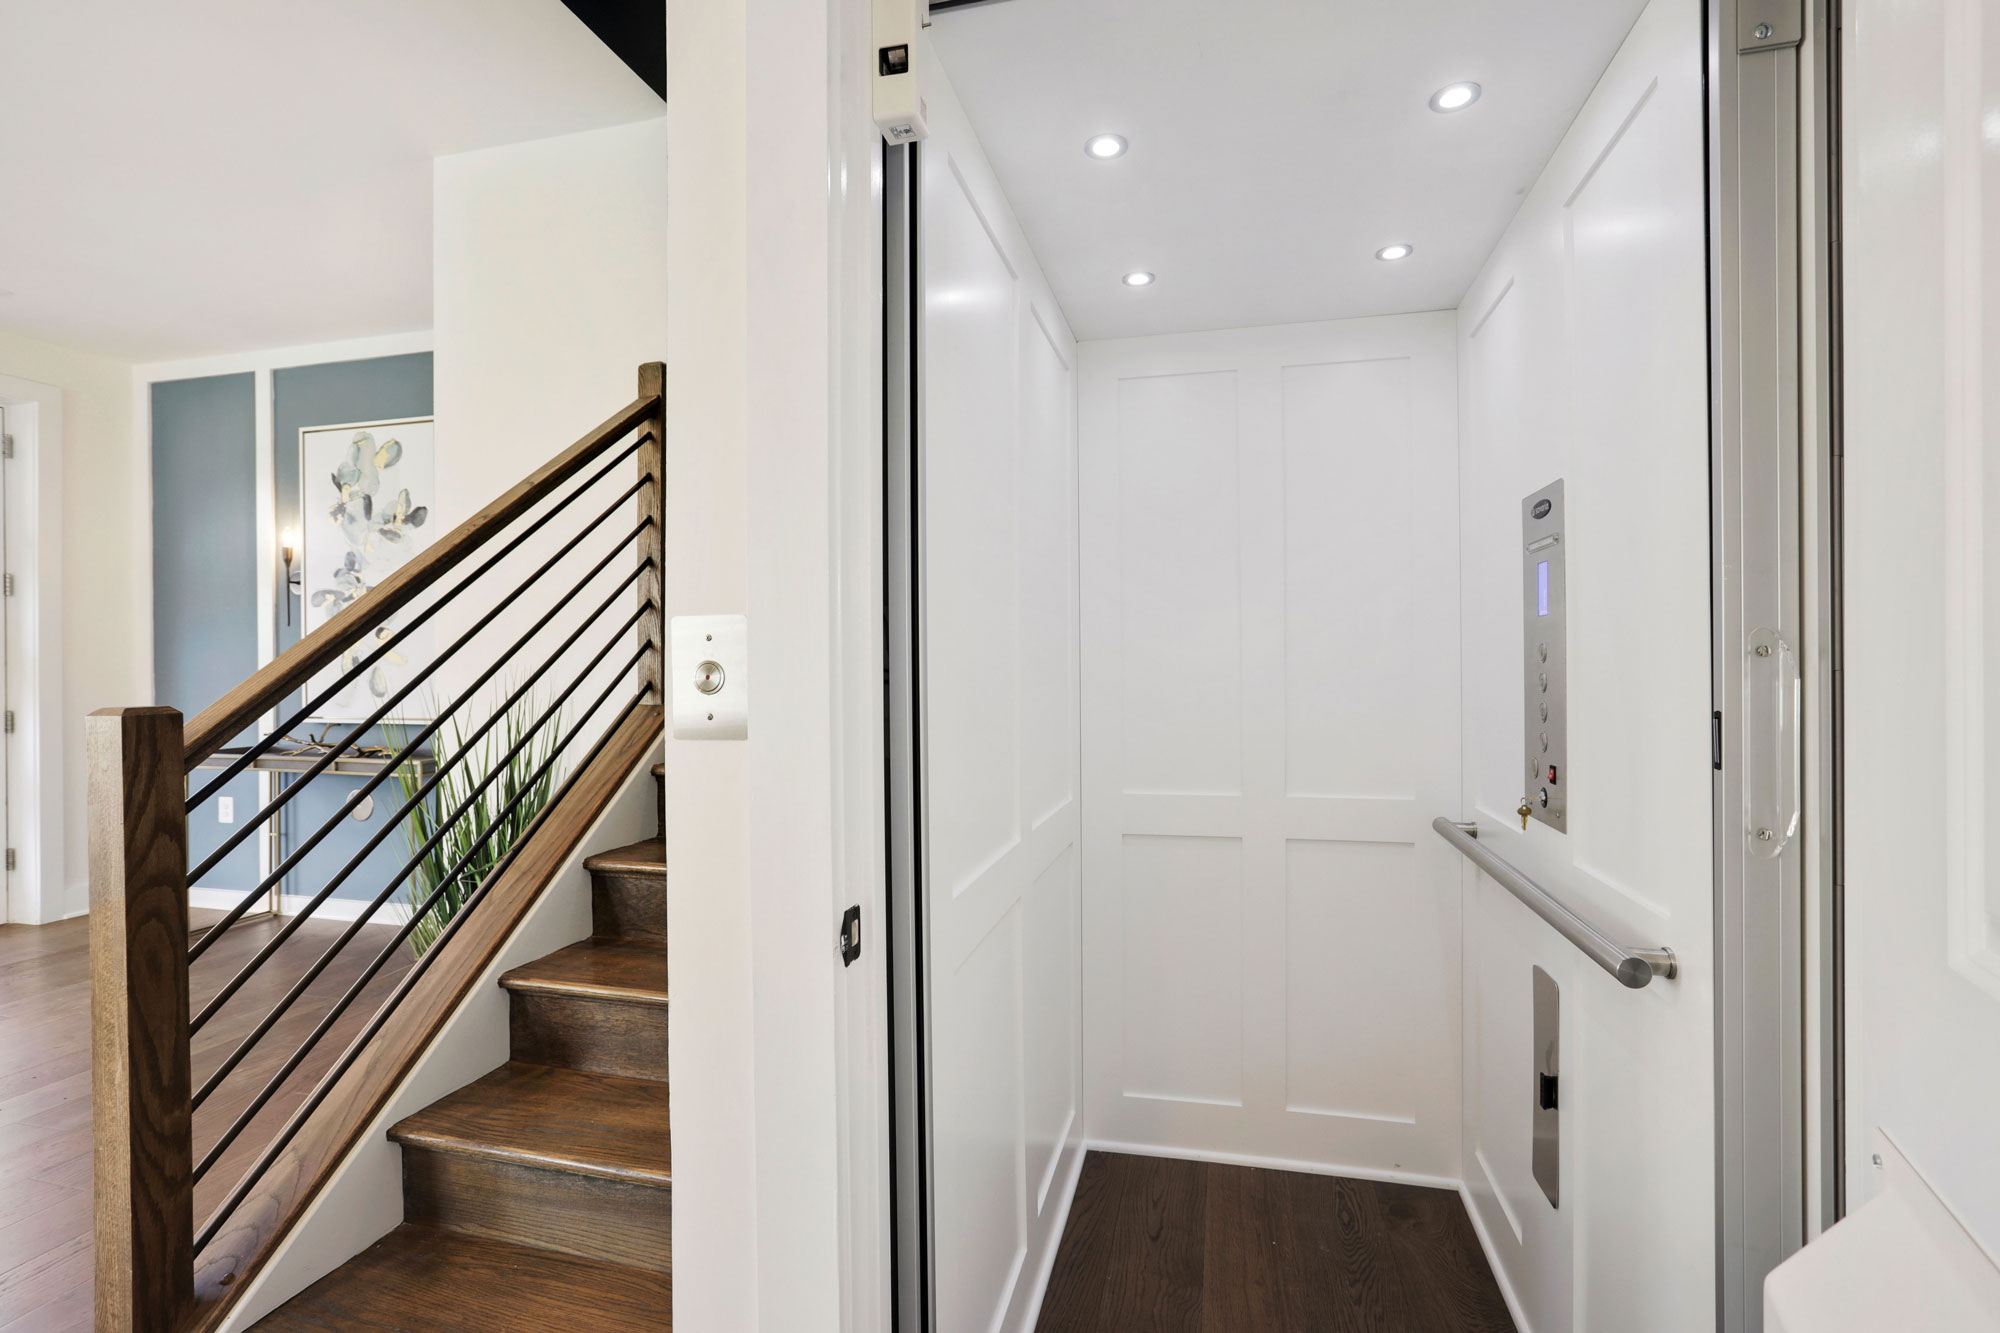 Elevator, Elevator Townhomes in Gaithersburg, MD, Crown by Craftmark Homes